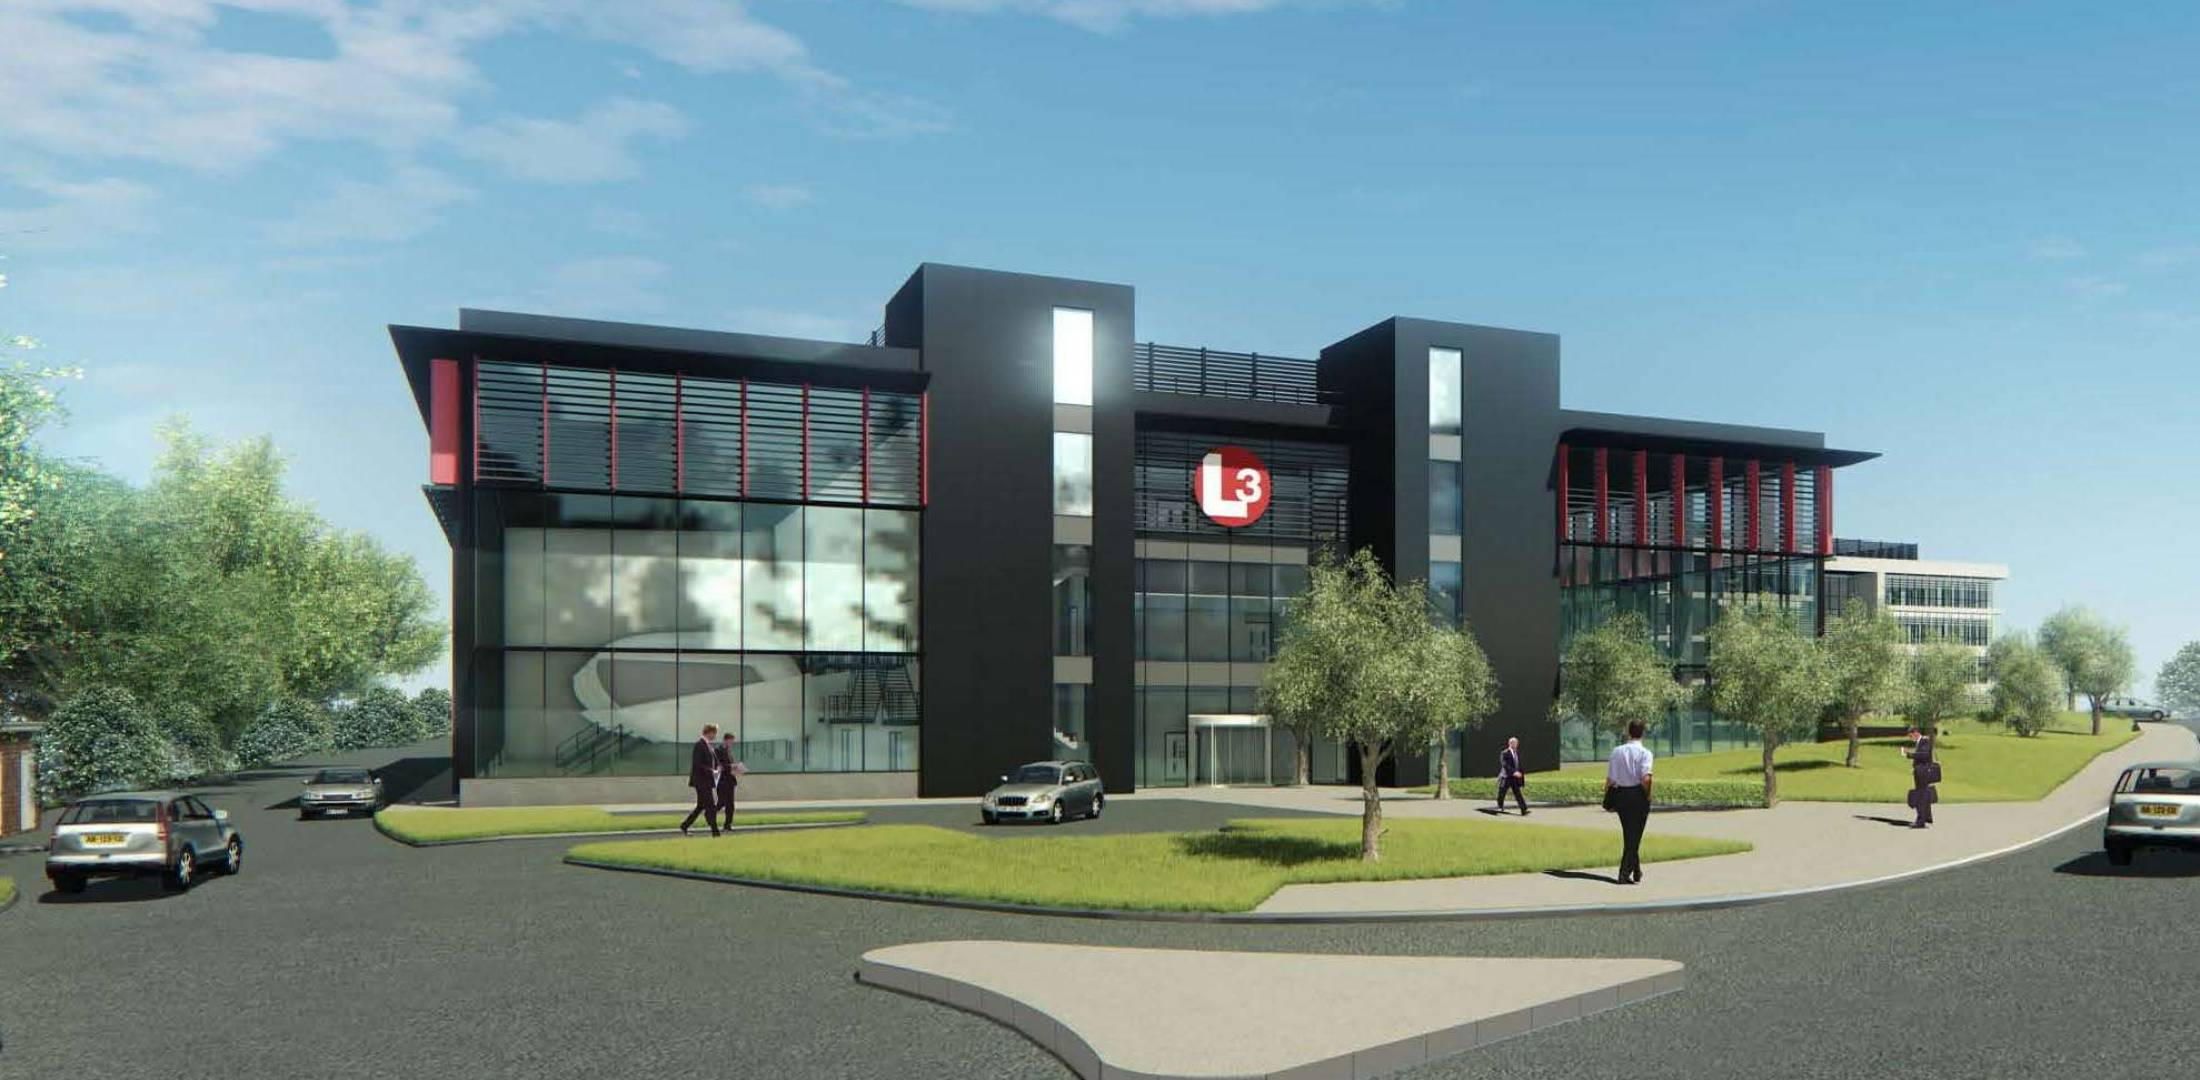 L3 to build simulator training production facility near for Online house builder simulator